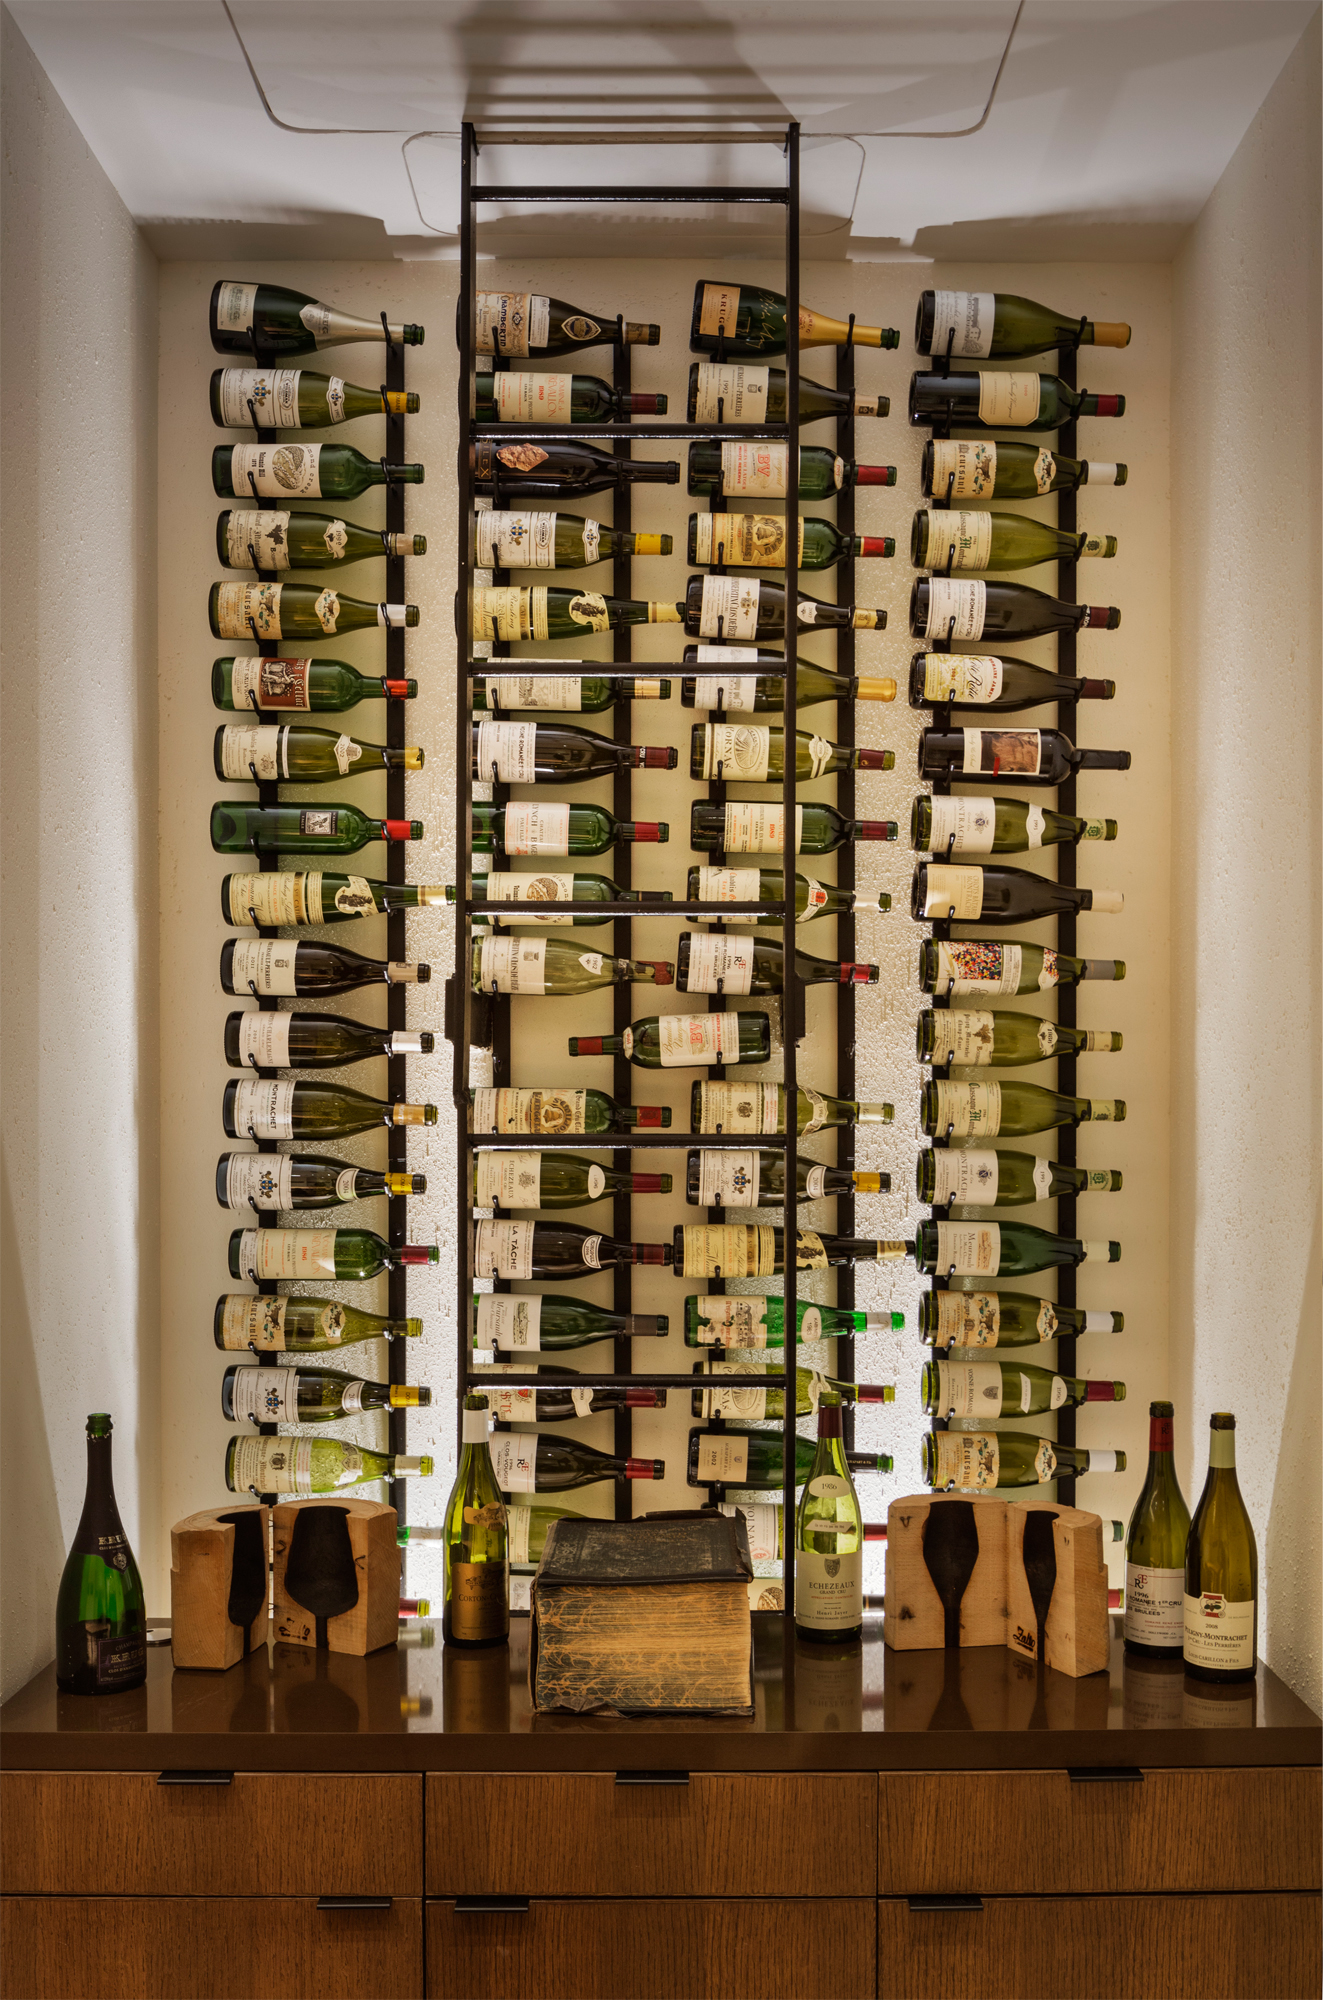 Aldo Sohm Wine Bar | Bentel & Bentel Architects/Planners A.I.A.